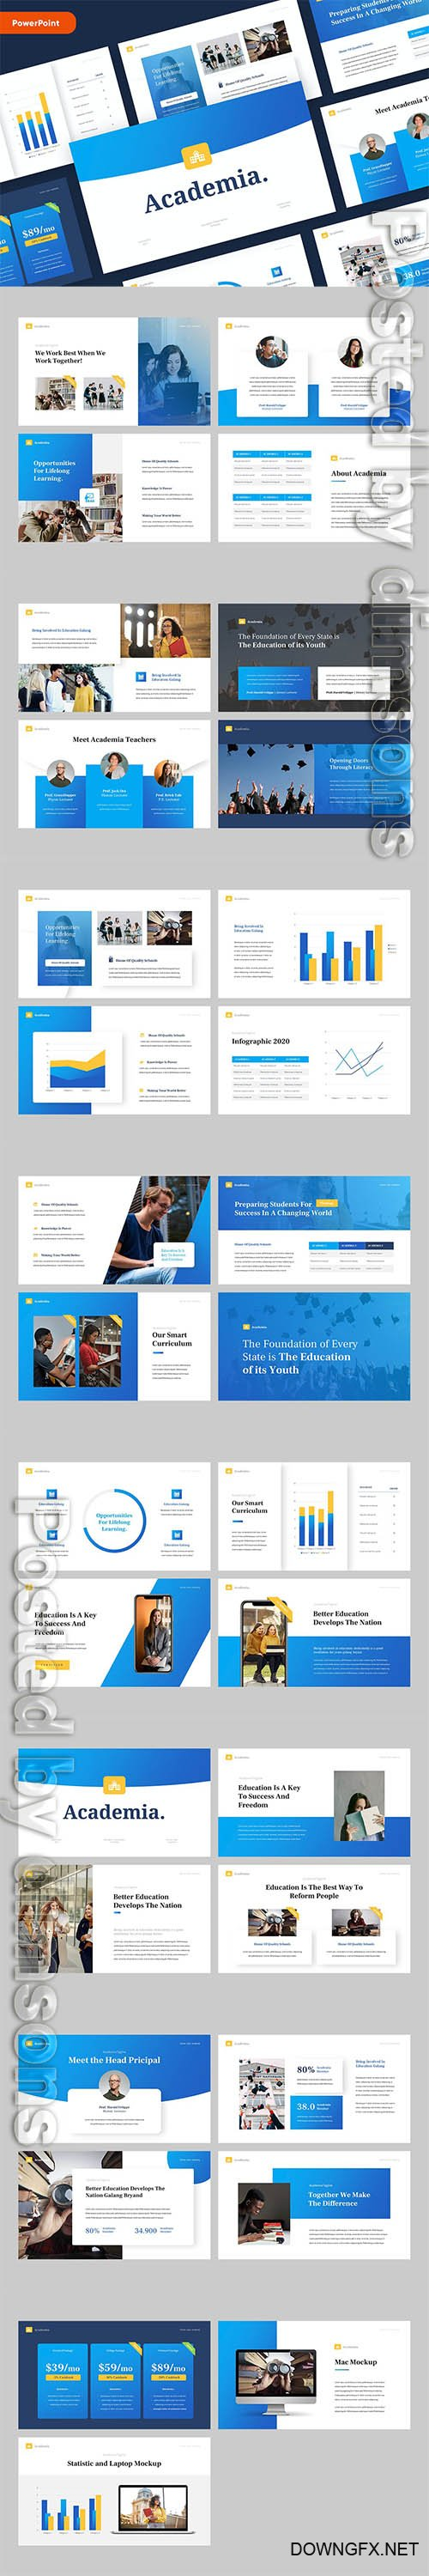 ACADEMIA - Education Powerpoint Template